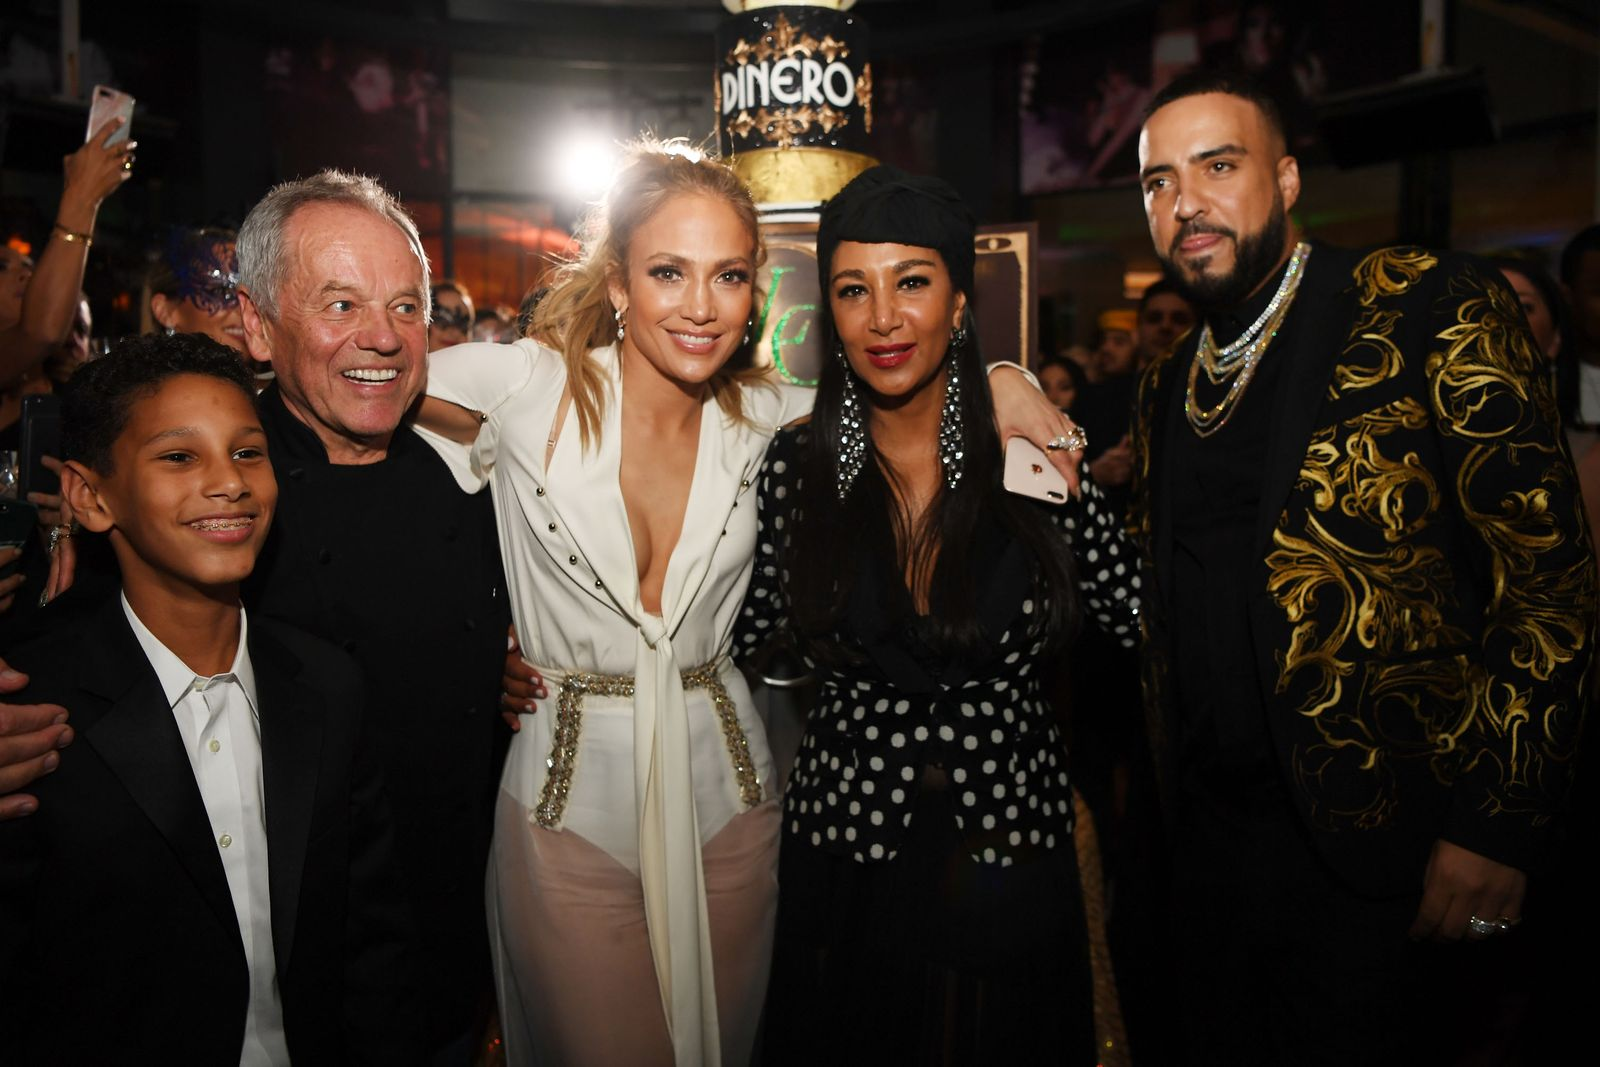 """Jennifer Lopez Celebrates Release Of New Single """"Dinero"""" With Wolfgang Puck During Sneak Peak Of The New Spago At Bellagio"""